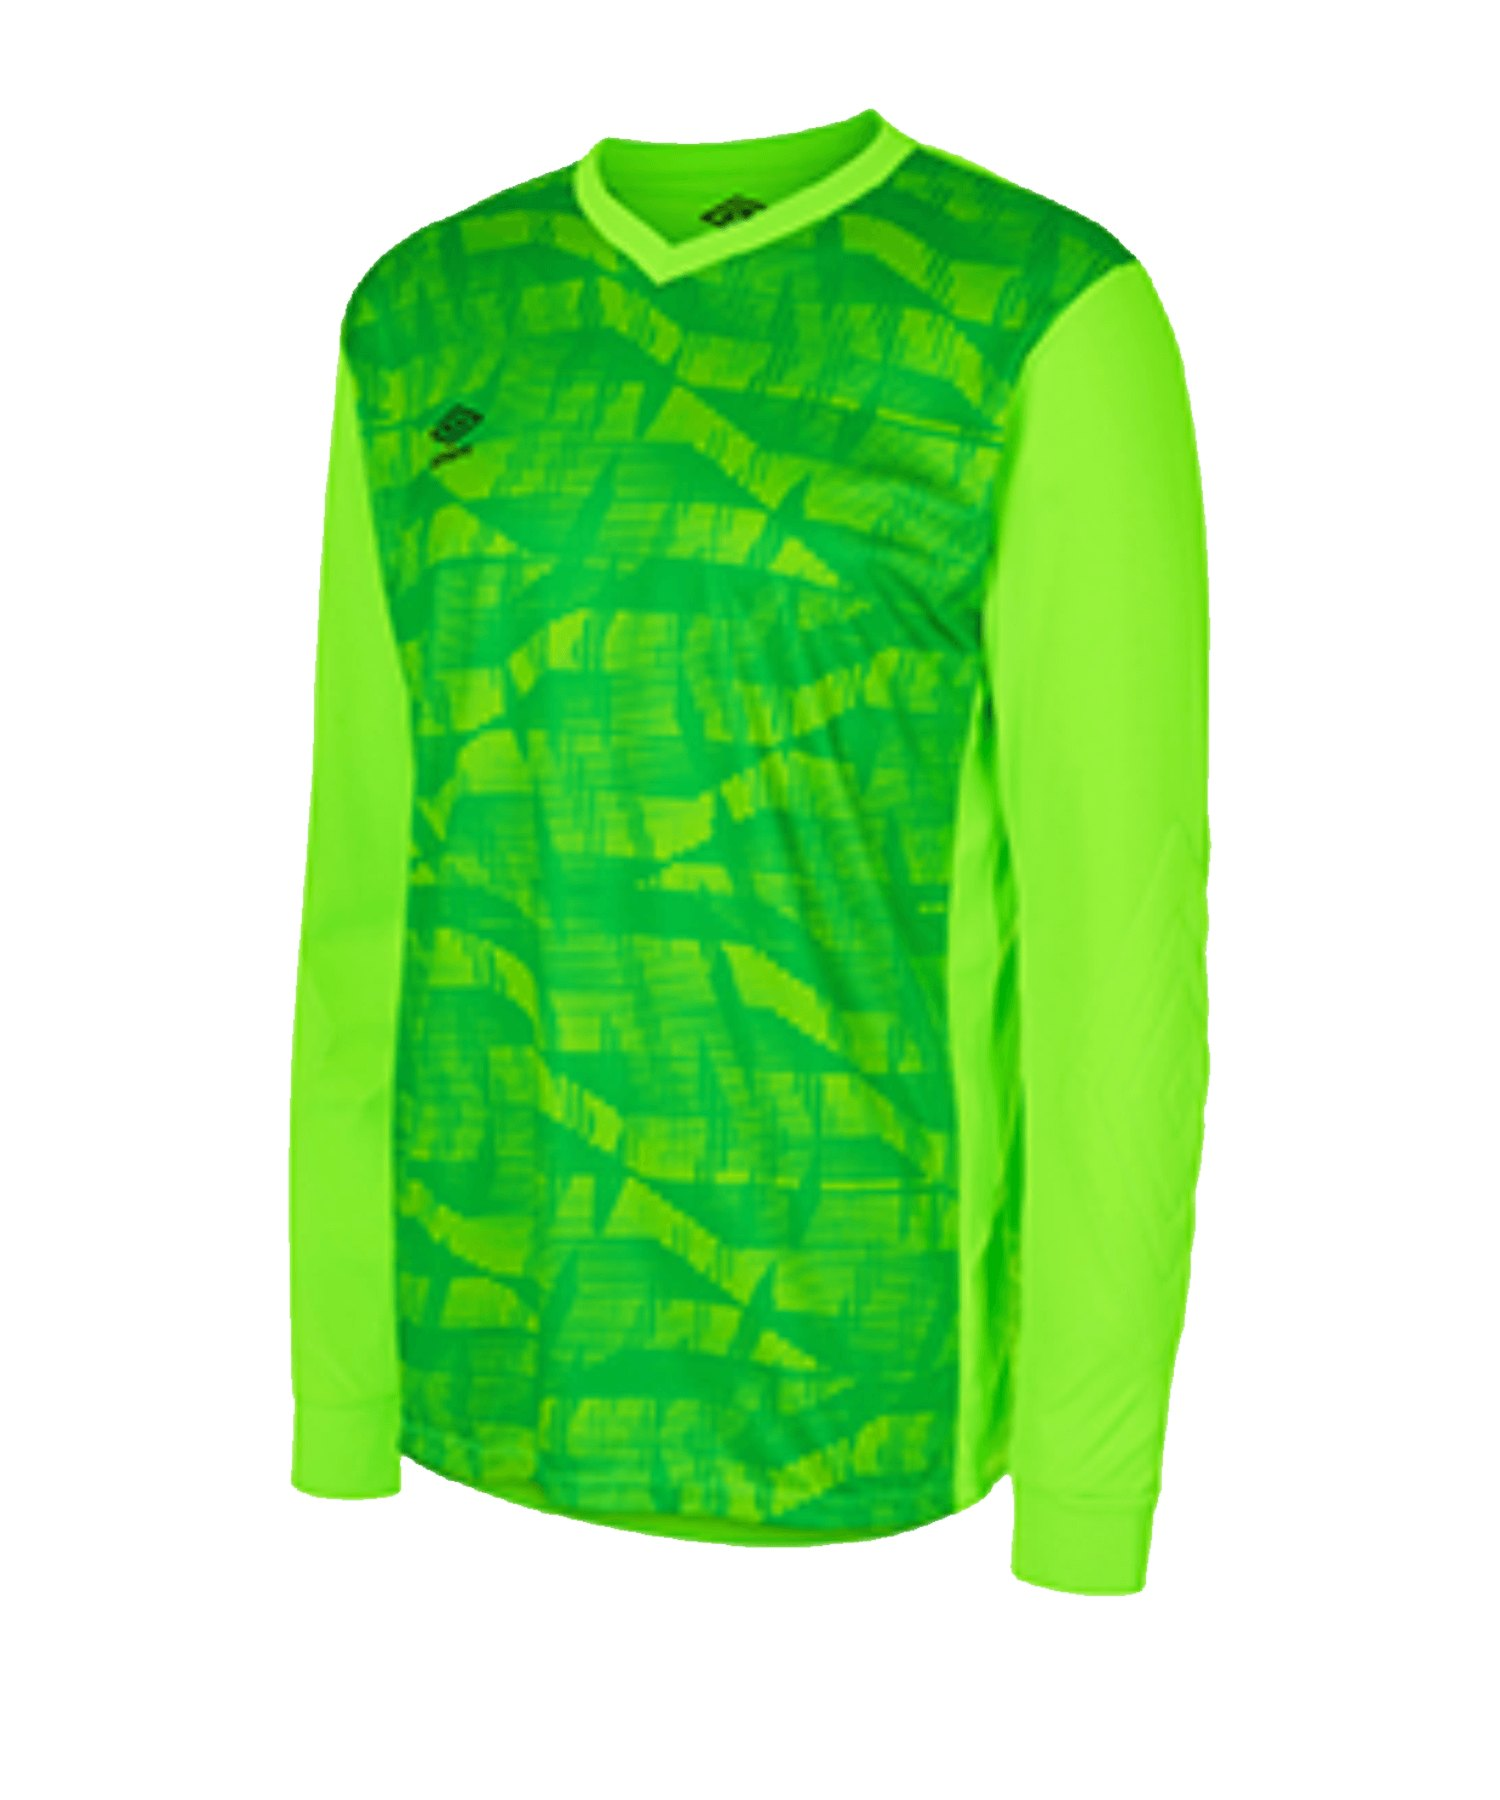 Umbro Club Essential Counter TW-Trikot Grün FZ86 - Gruen